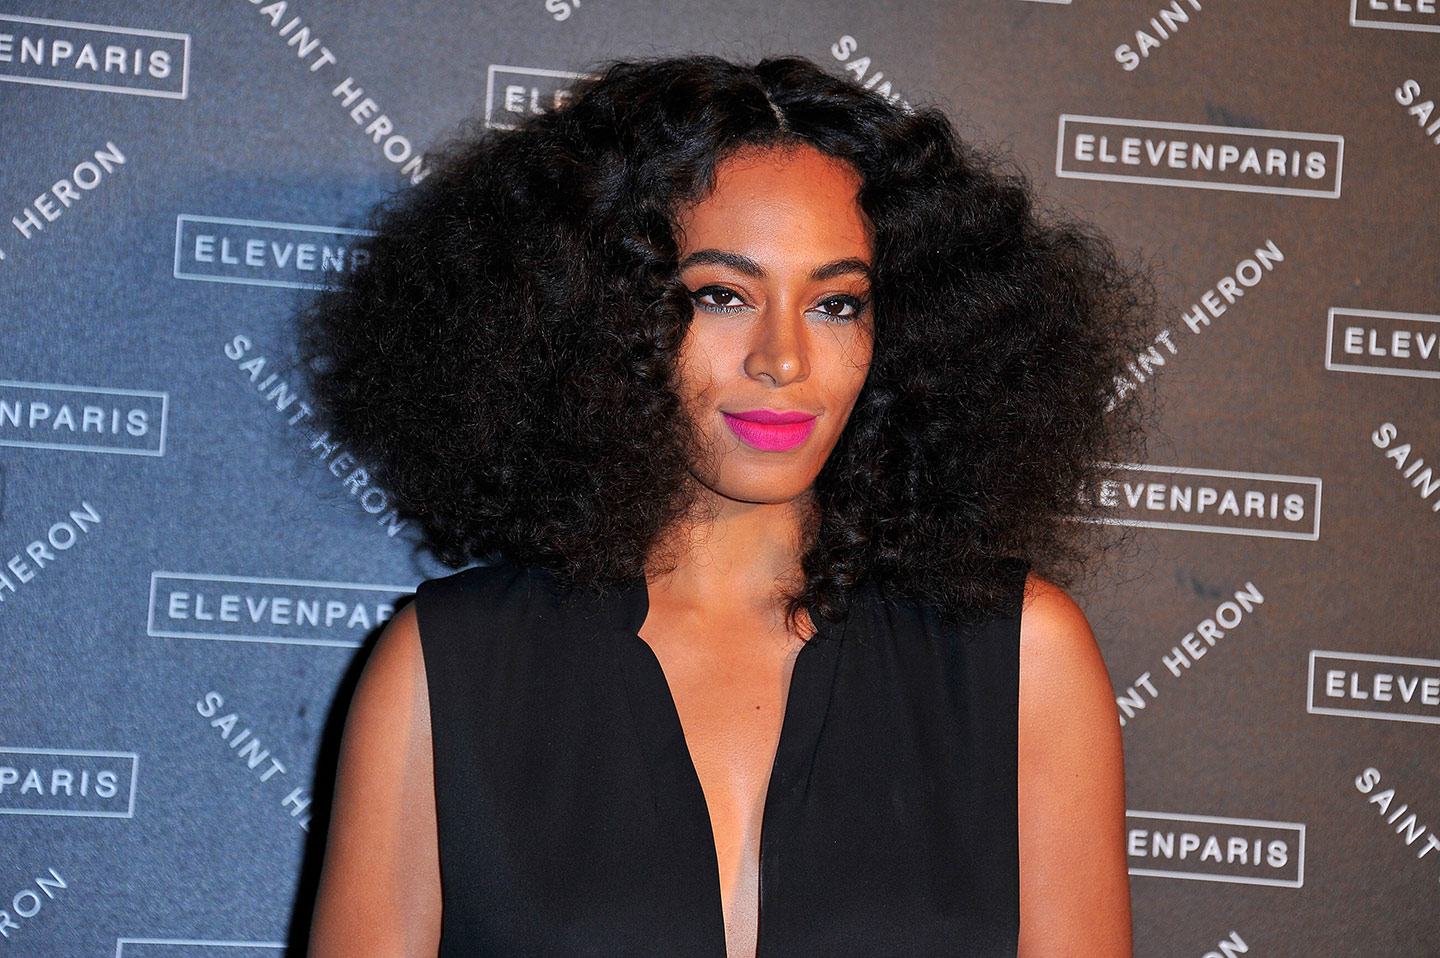 Solange just FaceTimed with a little girl who loves her music, and OMG the cuteness